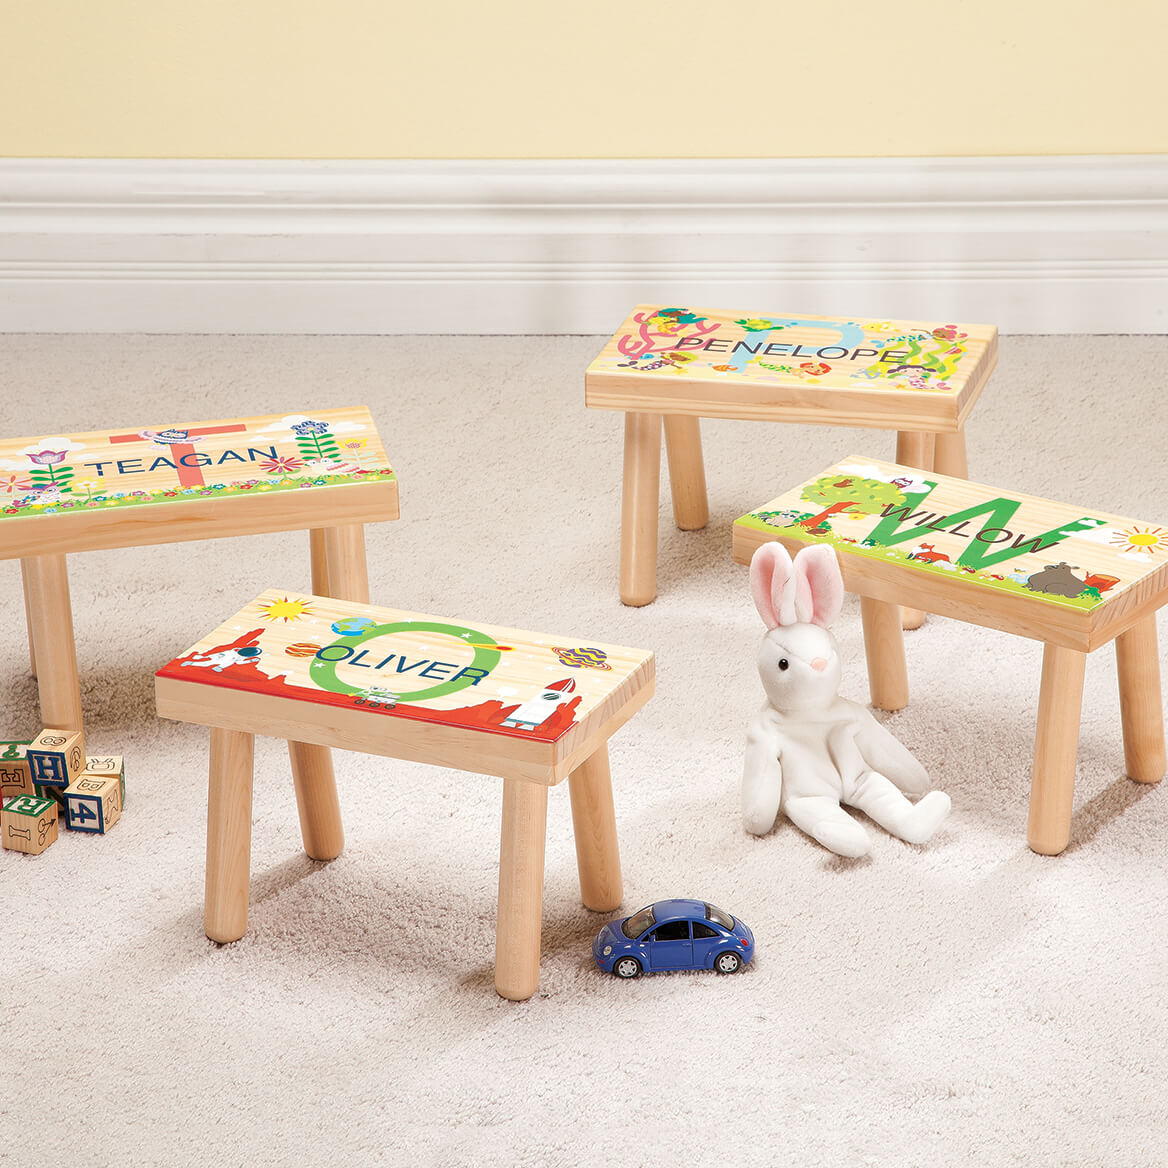 Personalized Under the Sea Children's Step Stool-368054